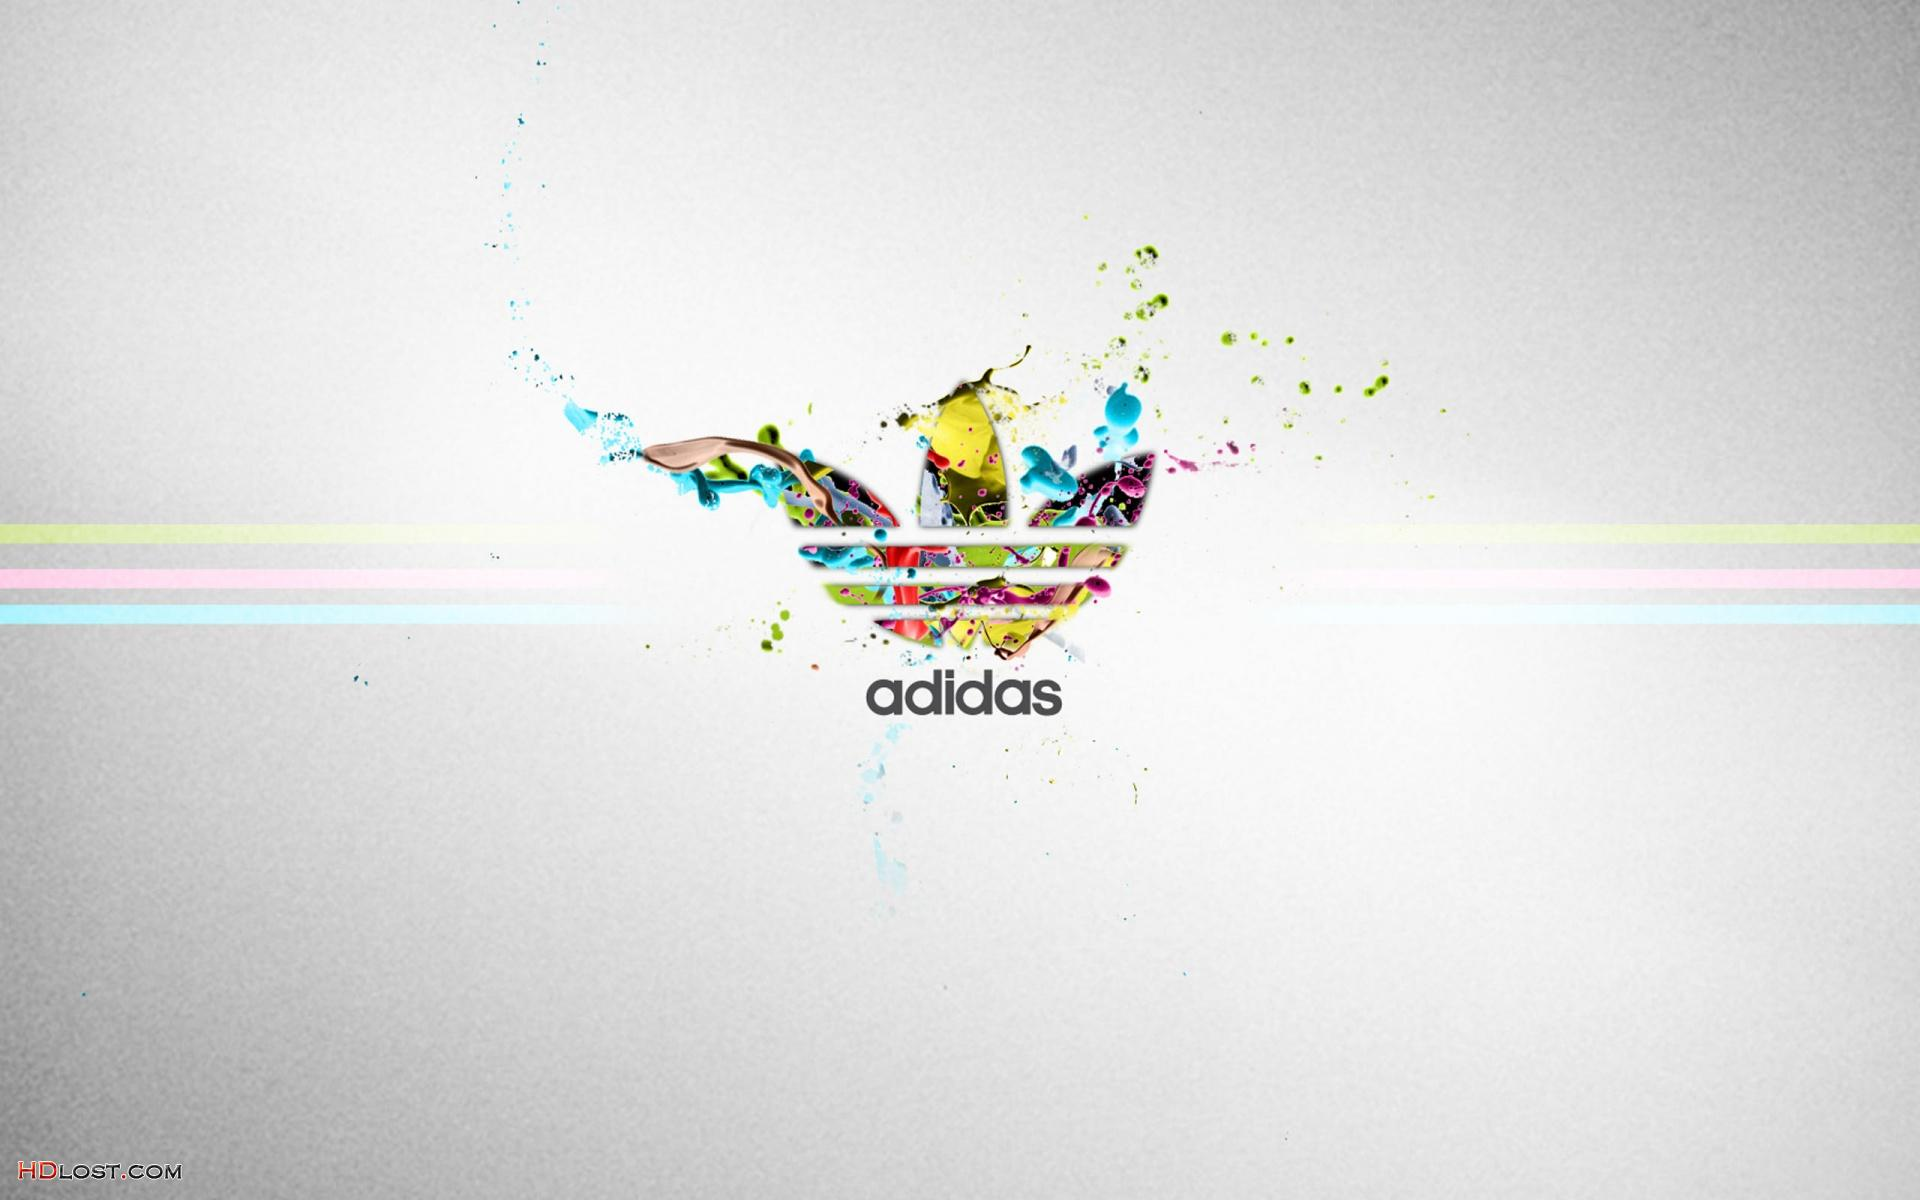 Fluminense Wallpaper Girl Adidas Wallpapers High Quality Download Free